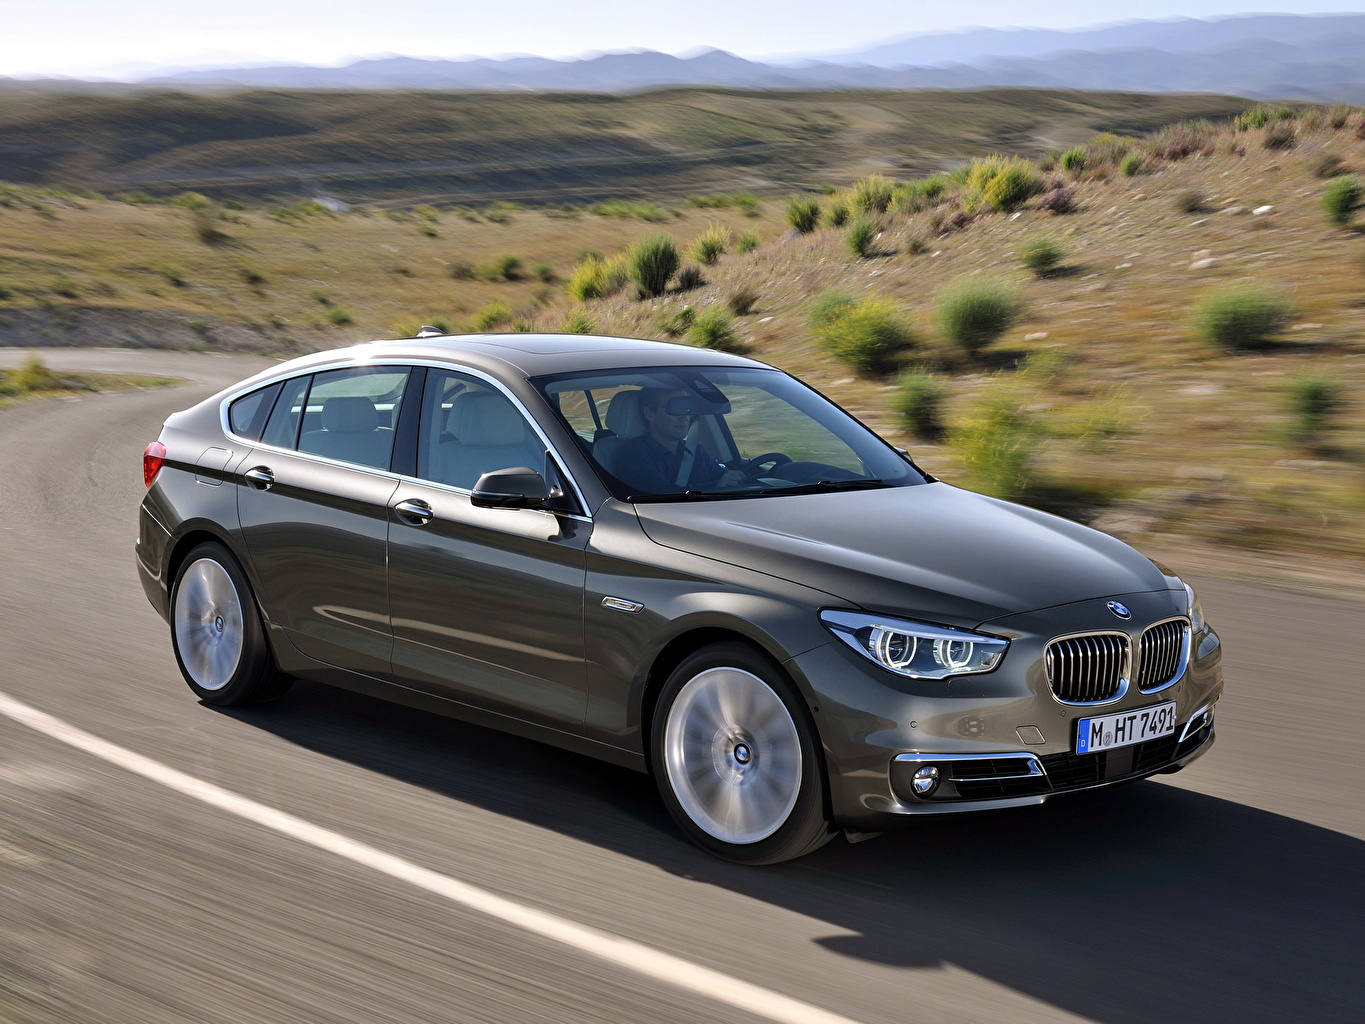 Images Bmw 535i Xdrive Gran Turismo Luxury Line Auto Side